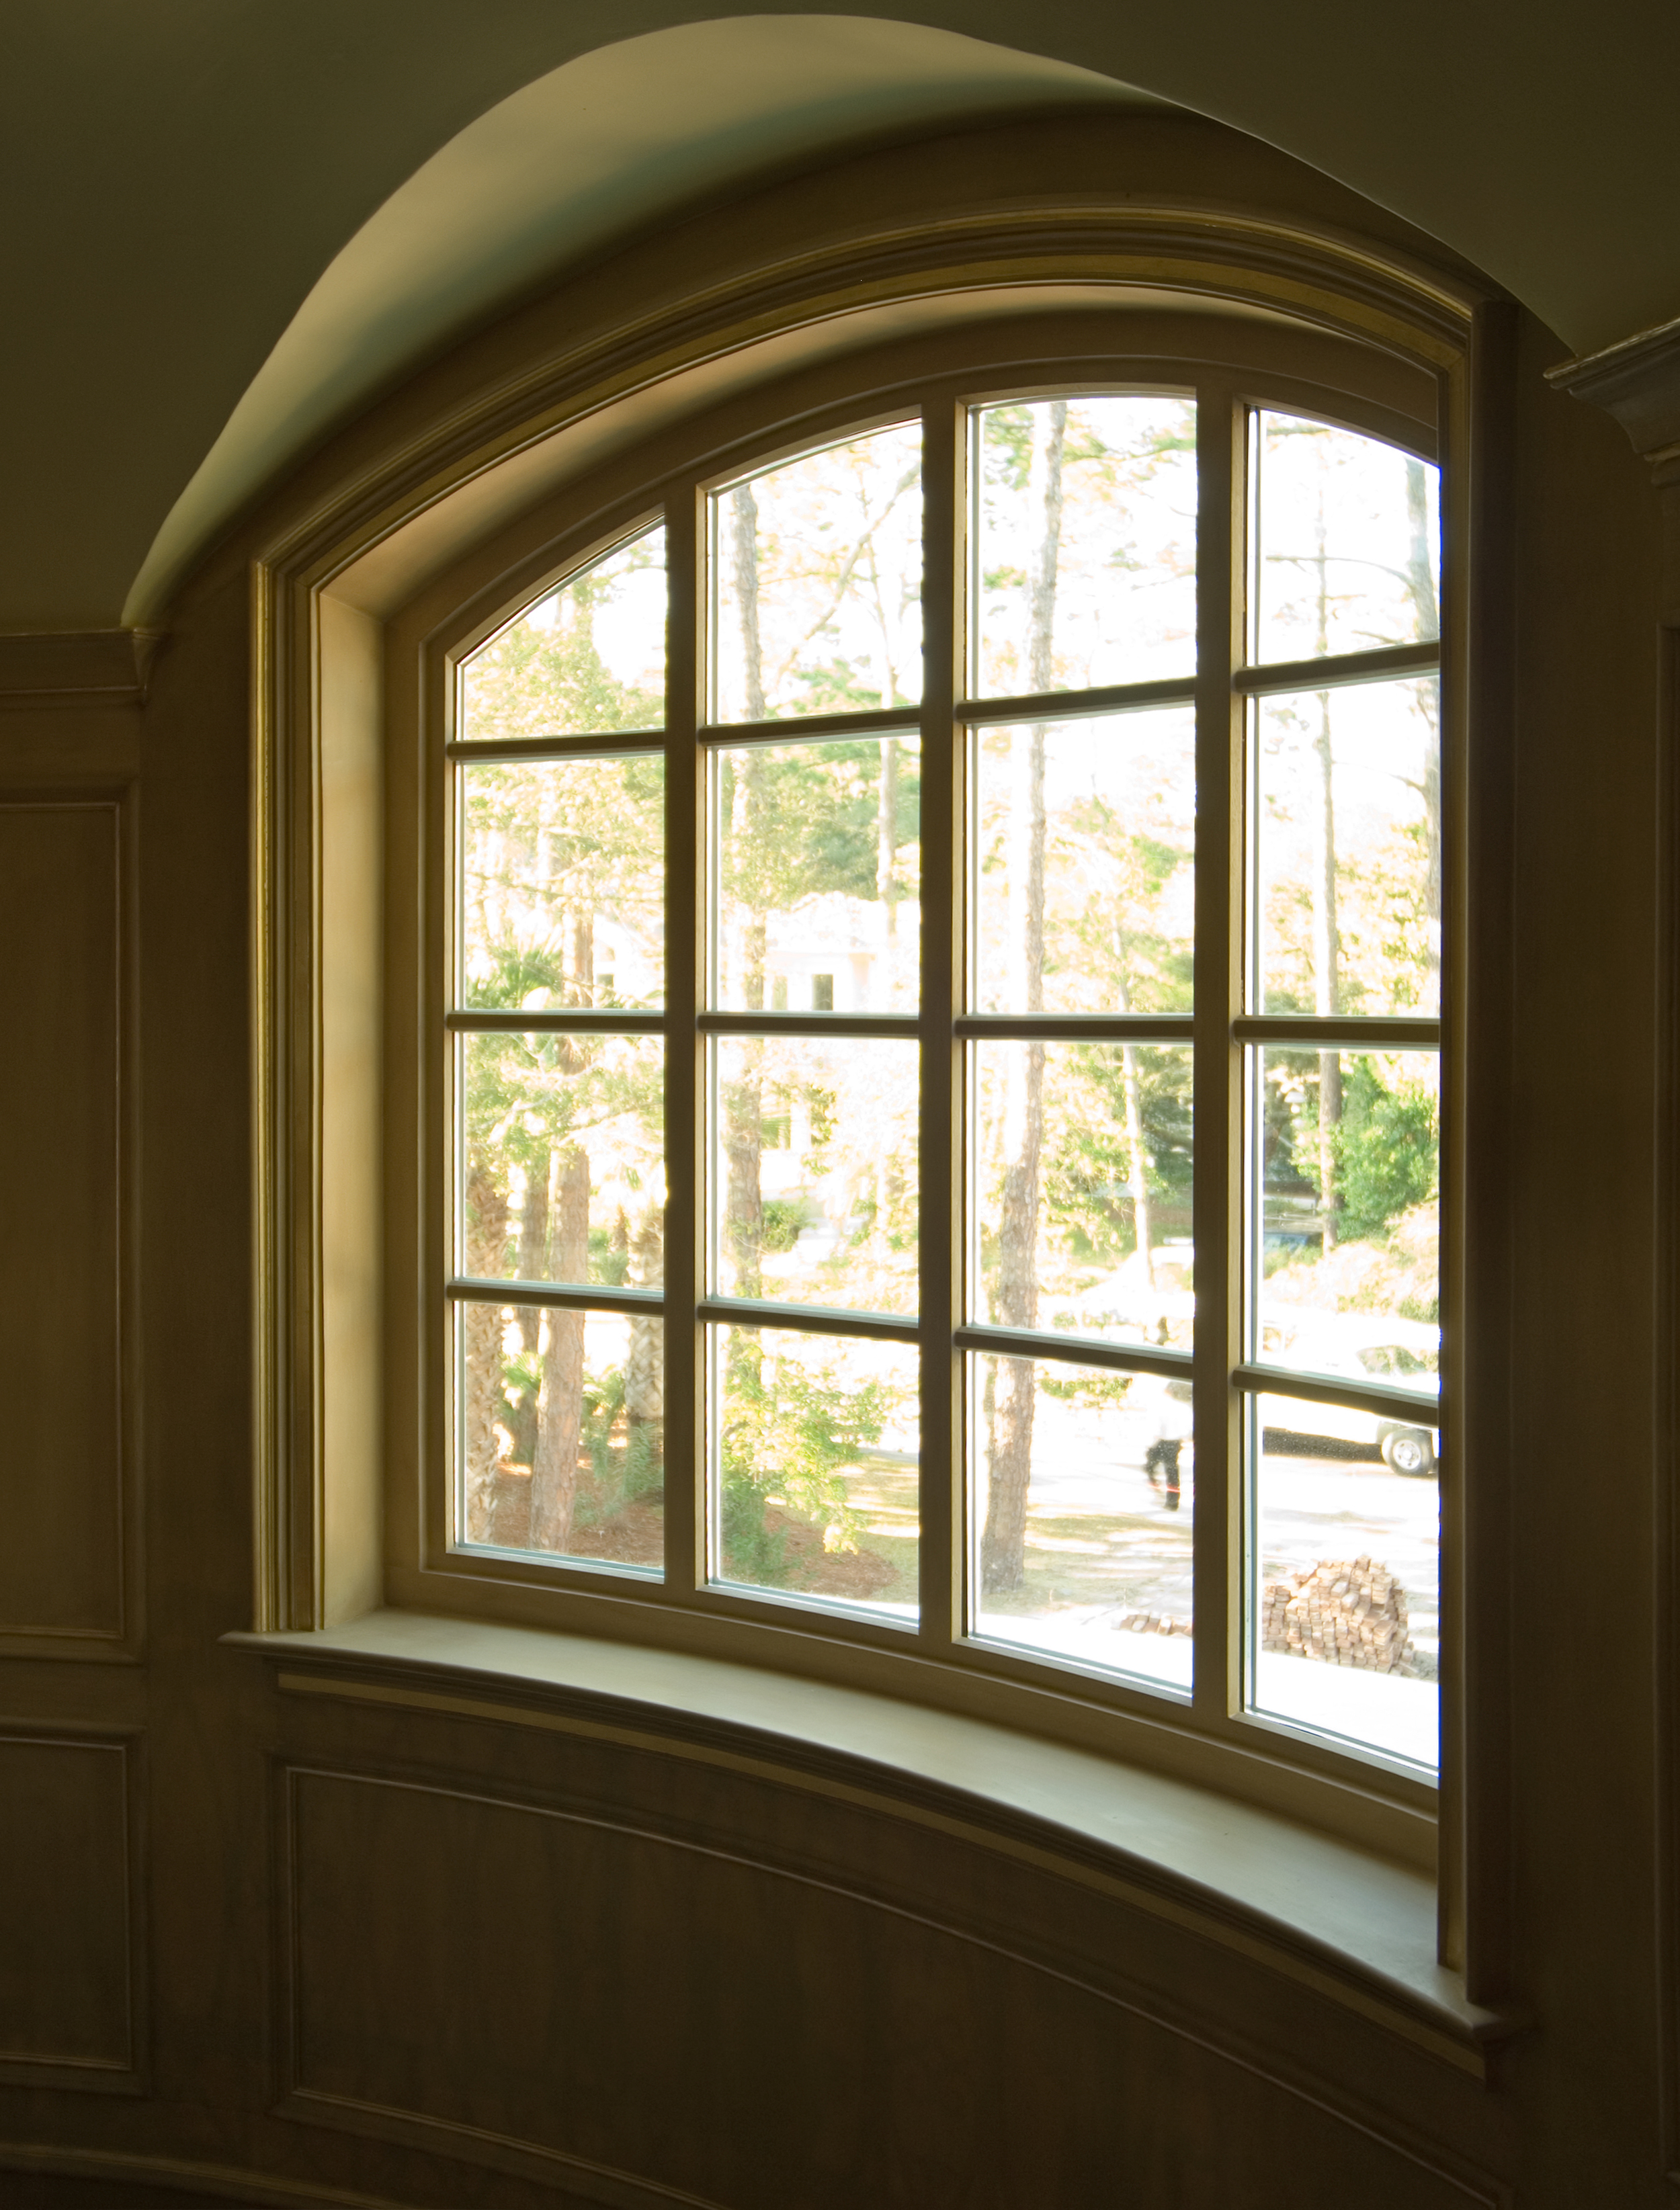 Curved, arched window